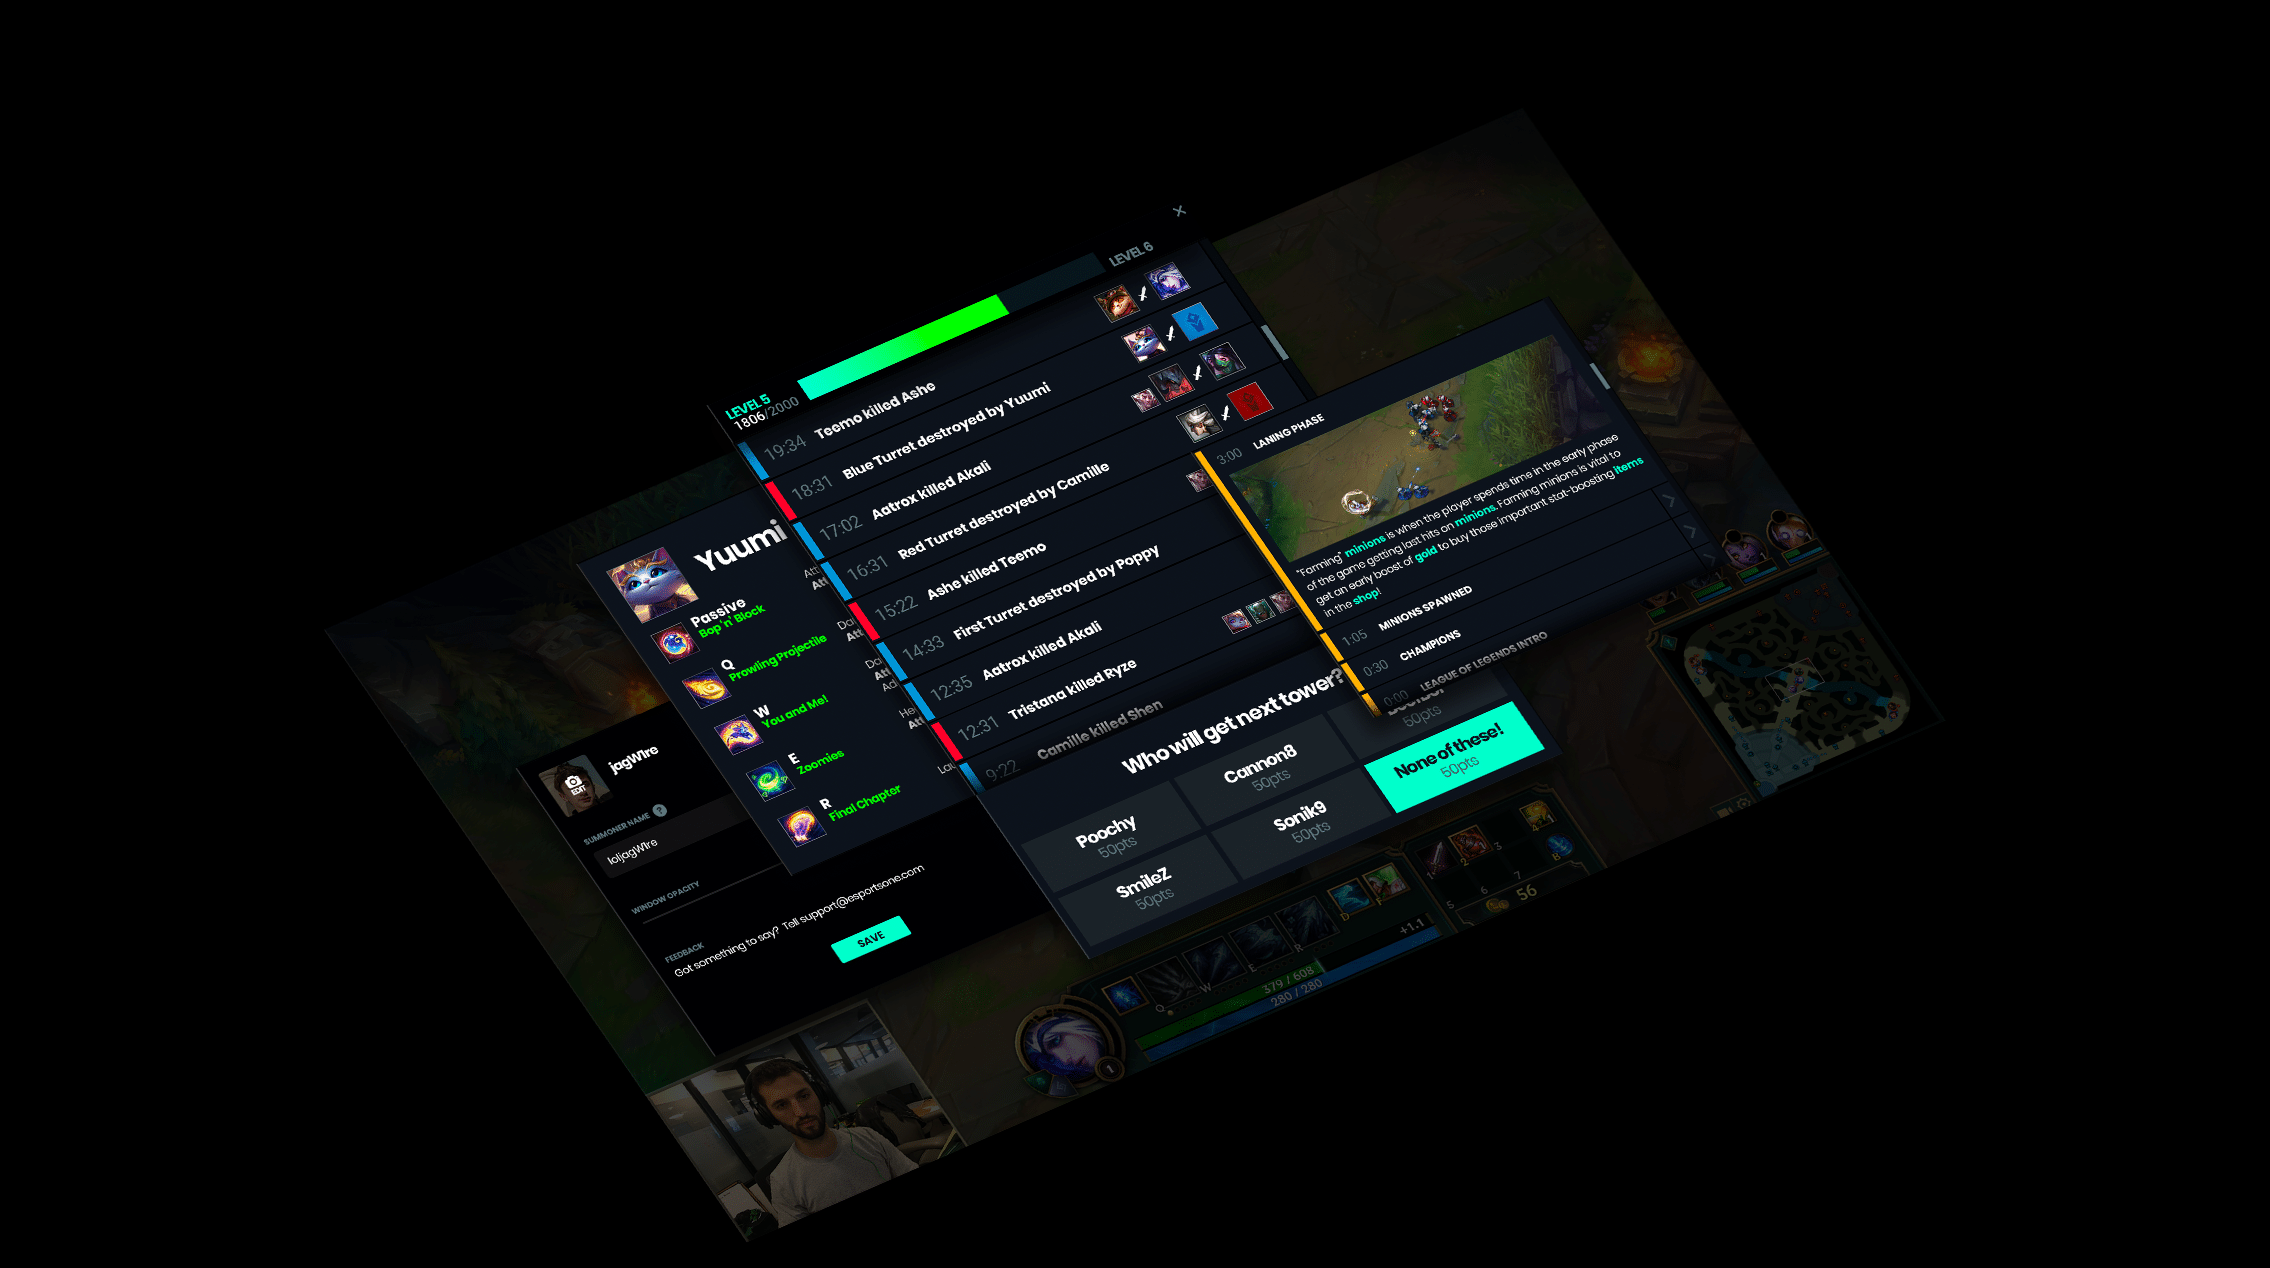 Introducing OneView, an Extension for Twitch